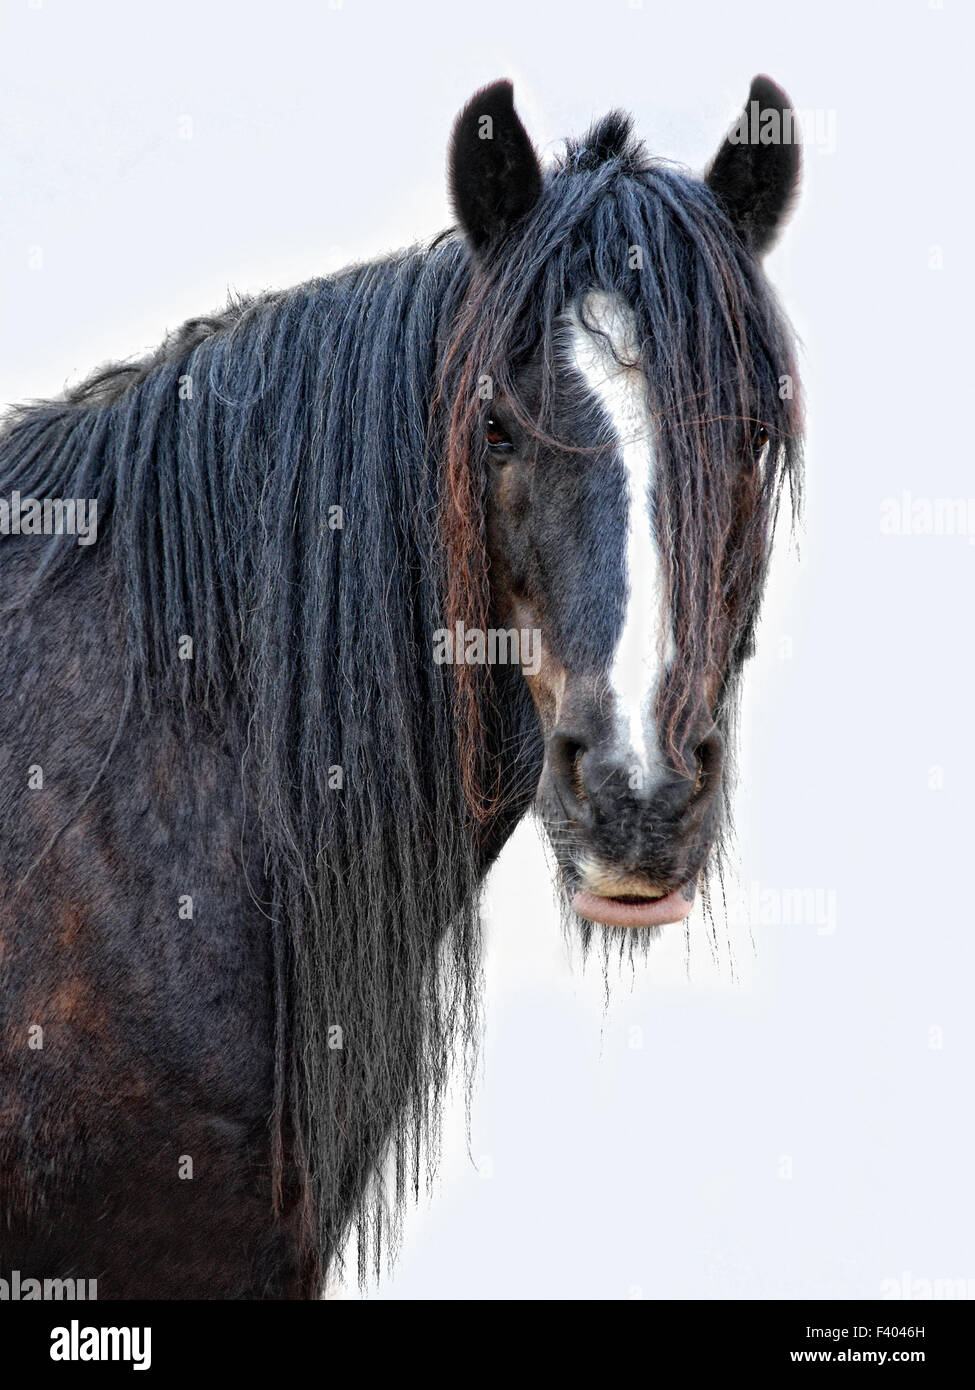 horse with no name - Stock Image